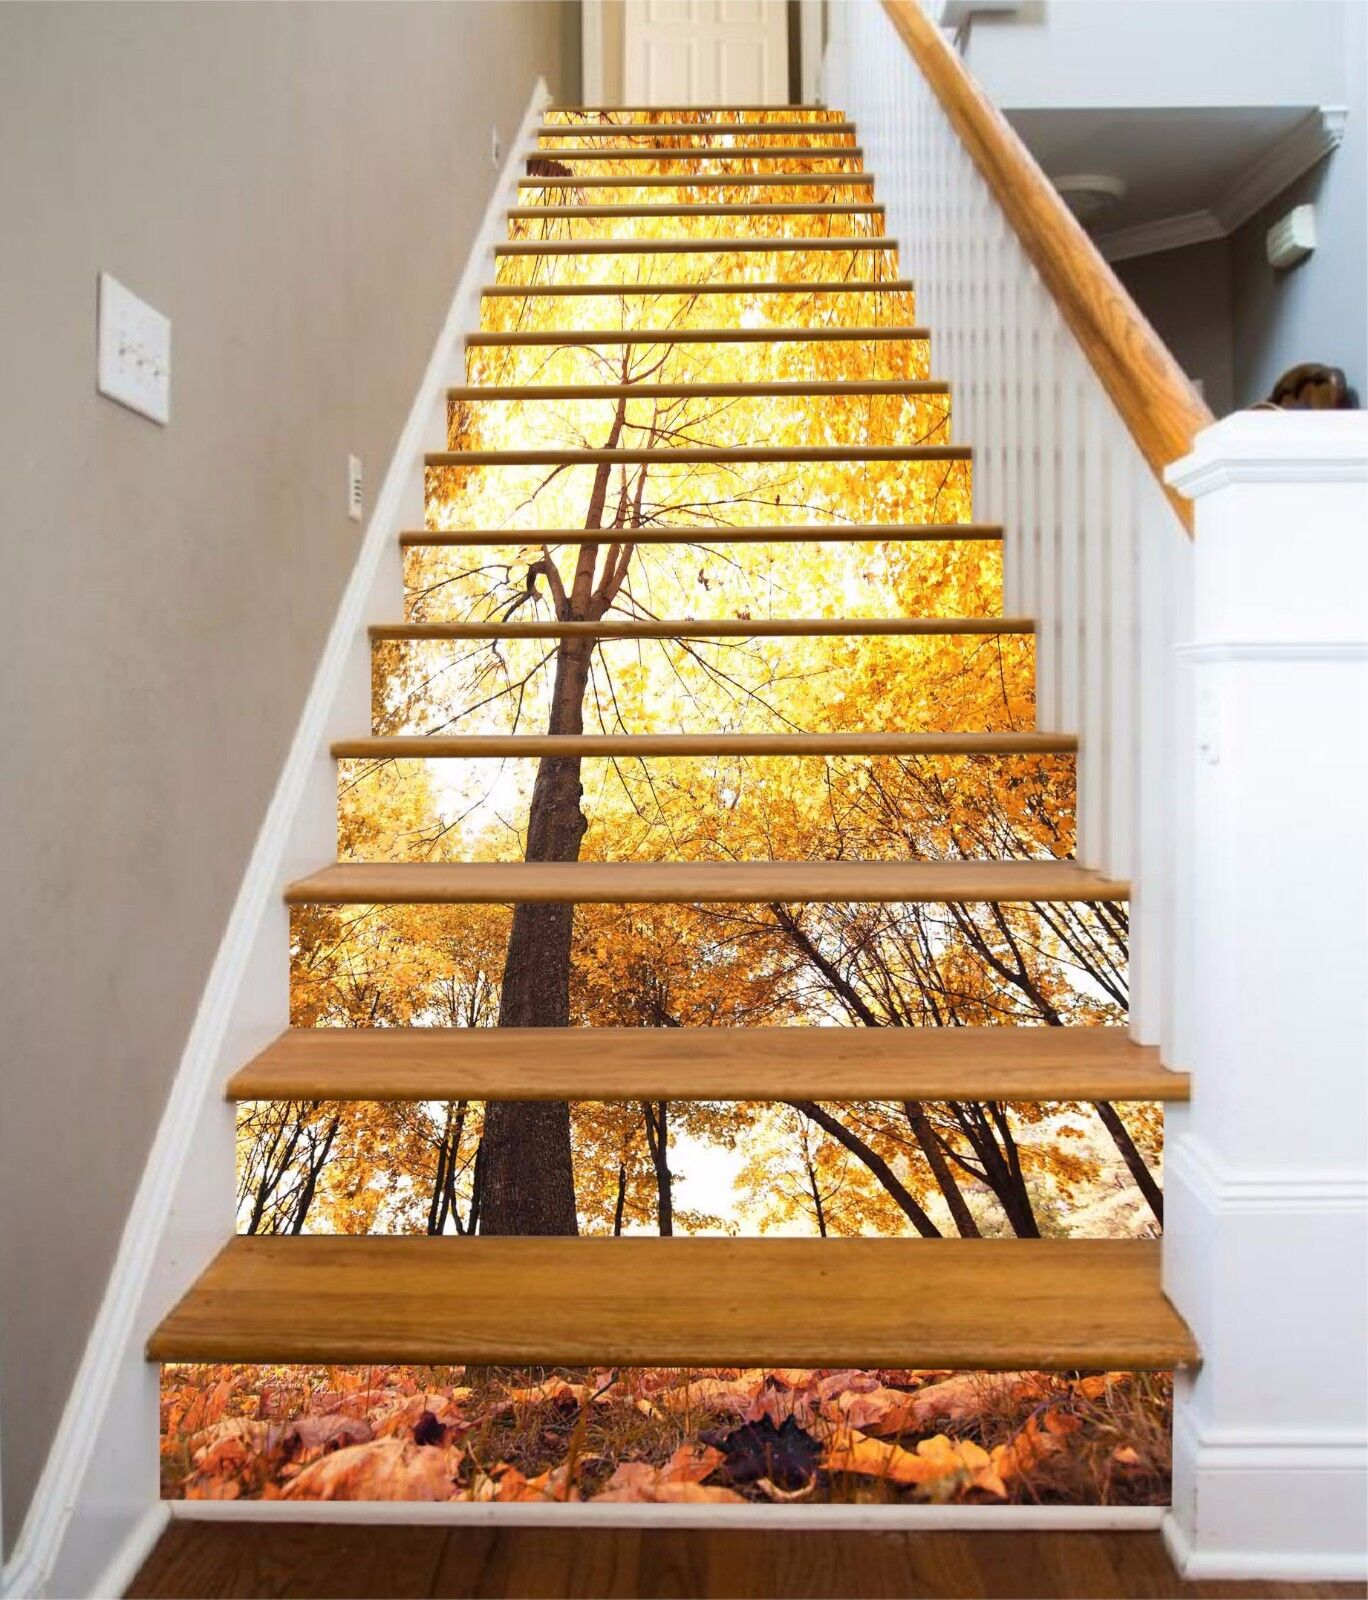 3D Fall Tree 740 Stair Risers Decoration Photo Mural Vinyl Decal Wallpaper AU